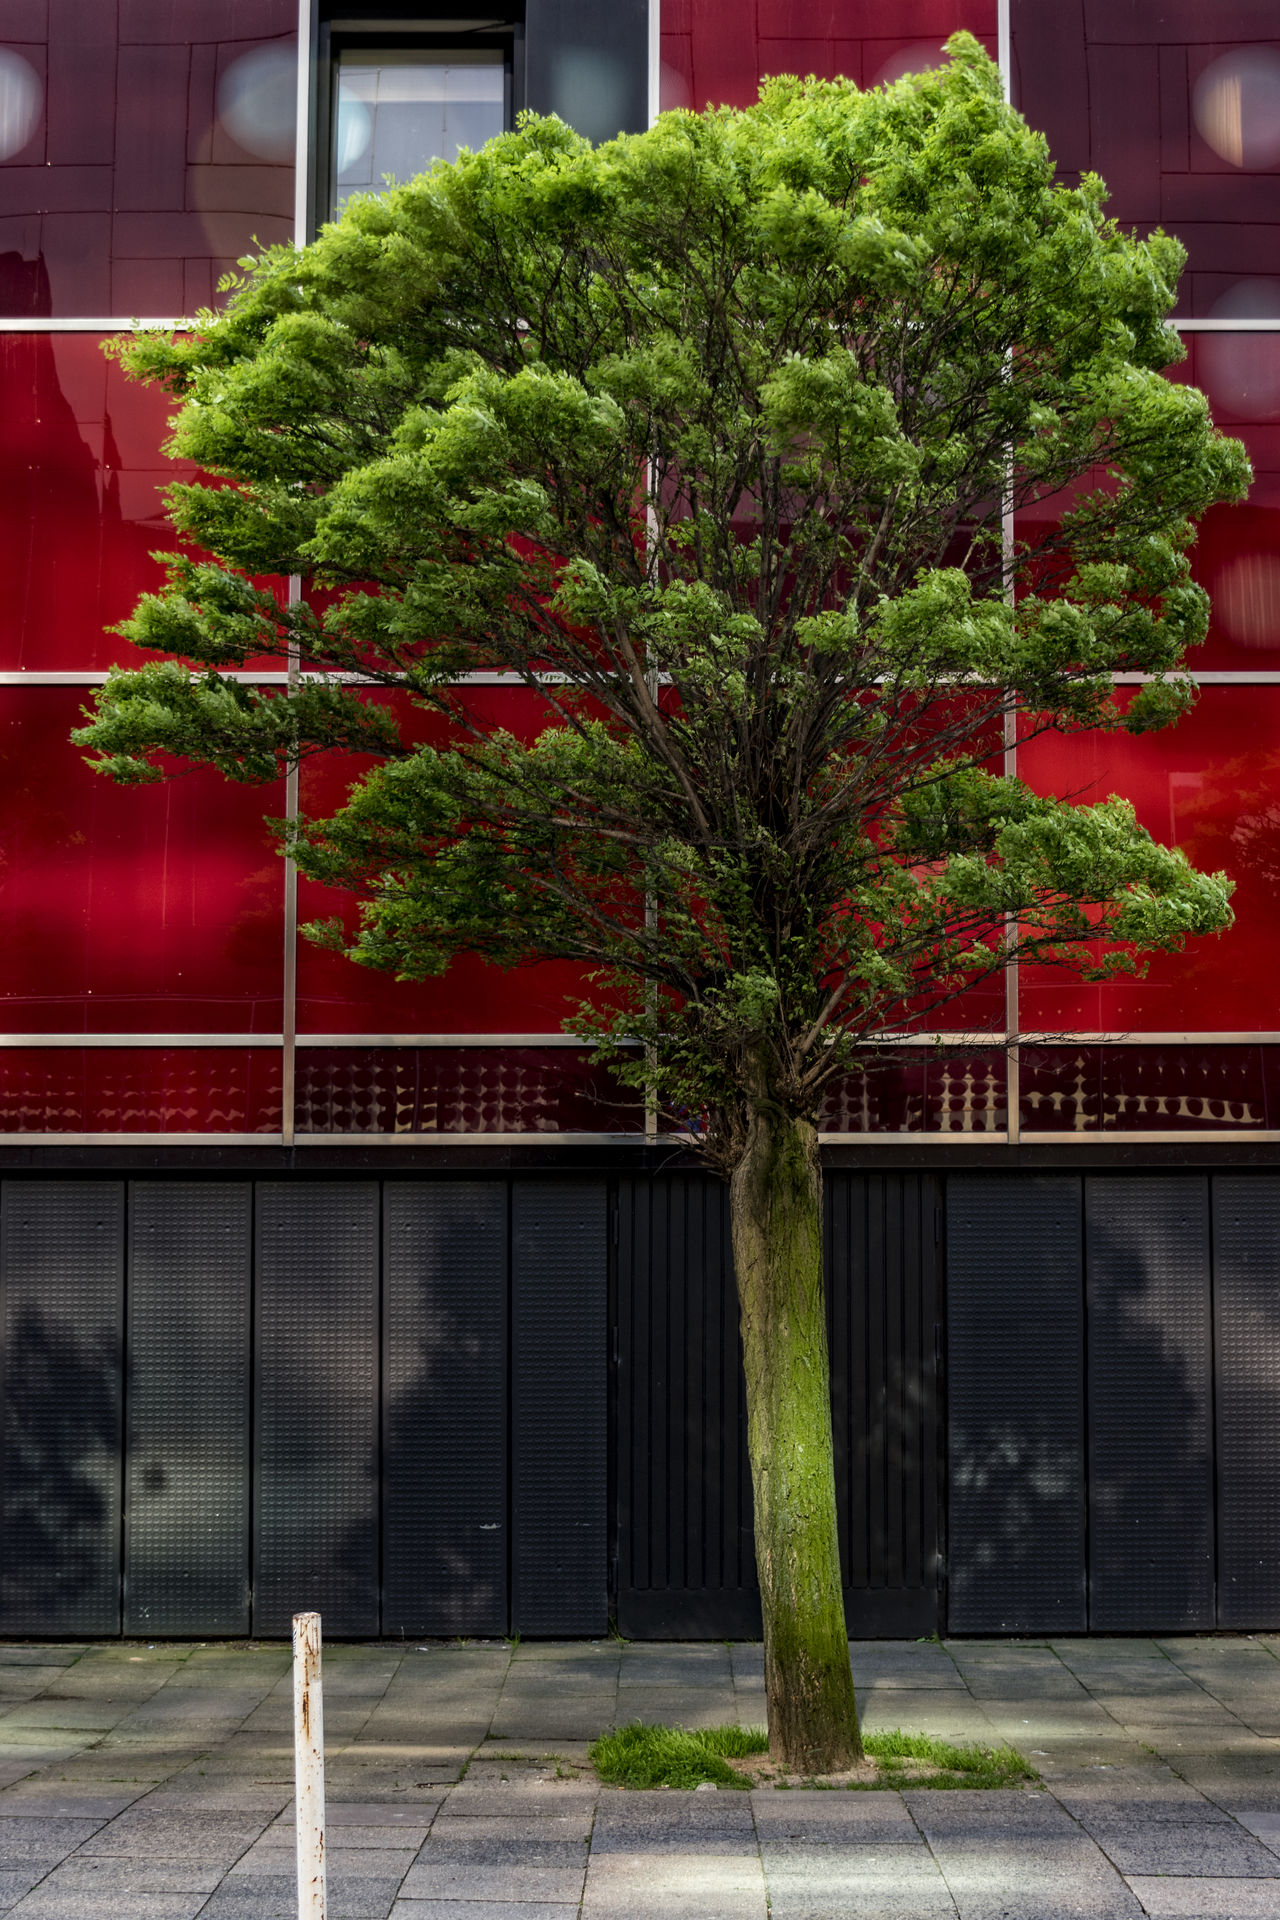 complementary Architecture Building Exterior Day Green Color Growth Hamburg Lonley Nature No People Outdoors Plant Red Street Tree